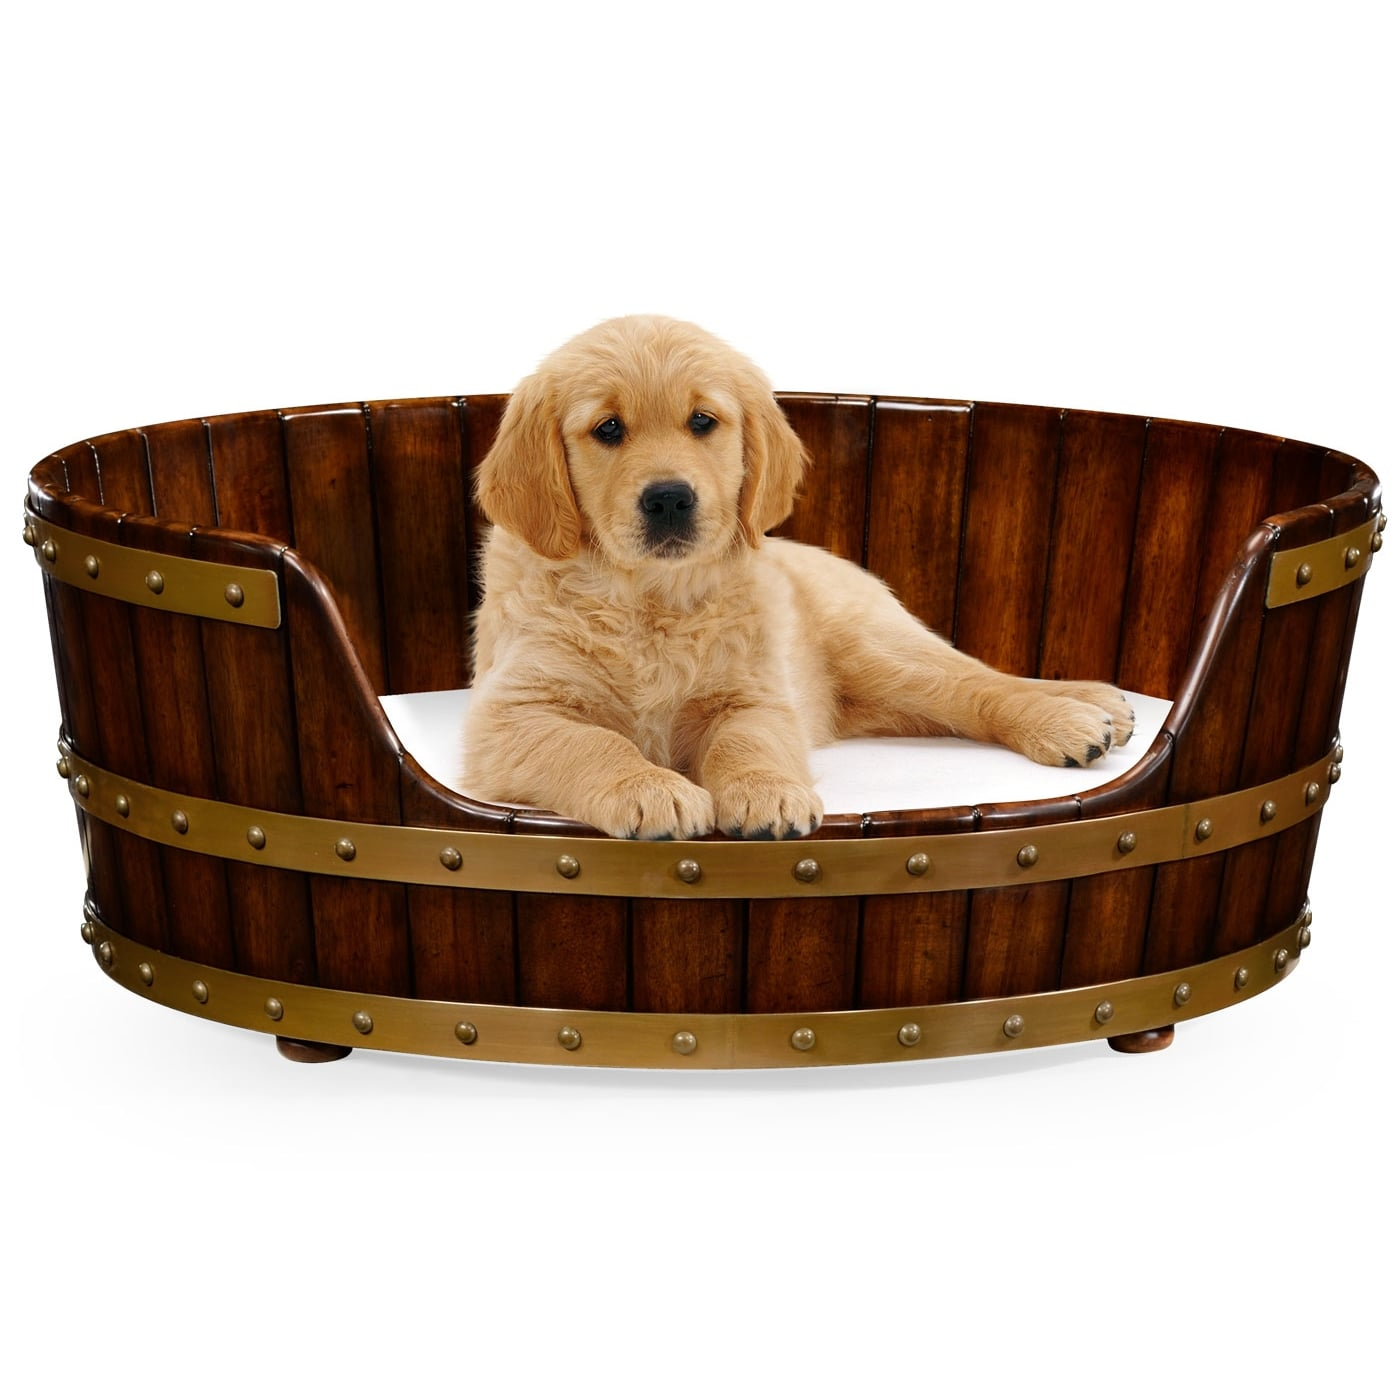 luxury dog bed furniture. Jonathan Charles Furniture Luxury Dog Bed, Large Size 32\u0027\u0027 Bed